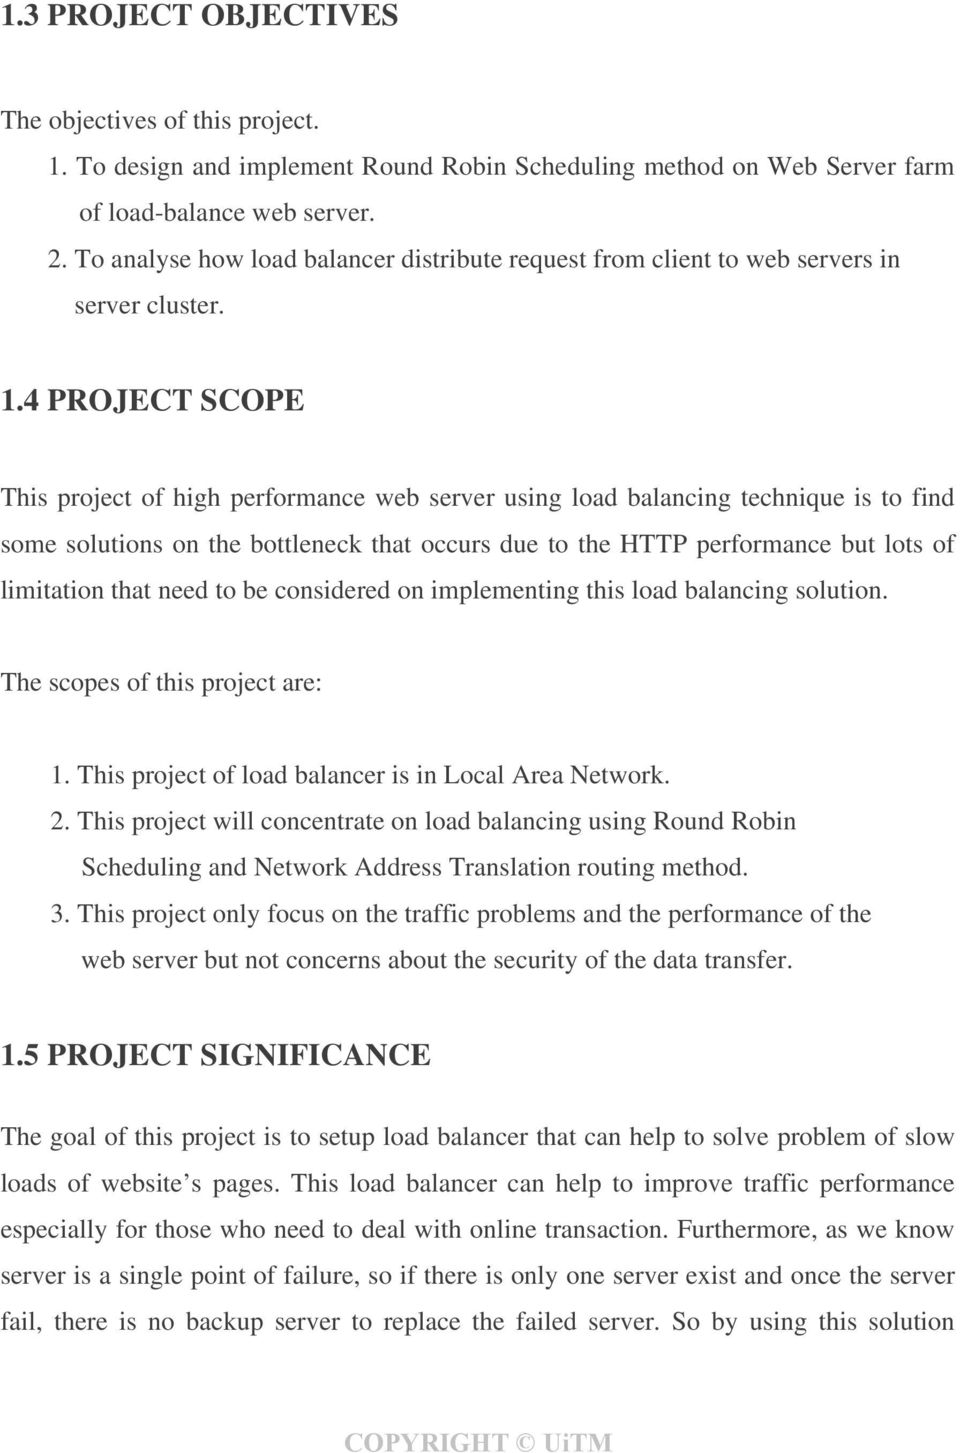 4 PROJECT SCOPE This project of high performance web server using load balancing technique is to find some solutions on the bottleneck that occurs due to the HTTP performance but lots of limitation